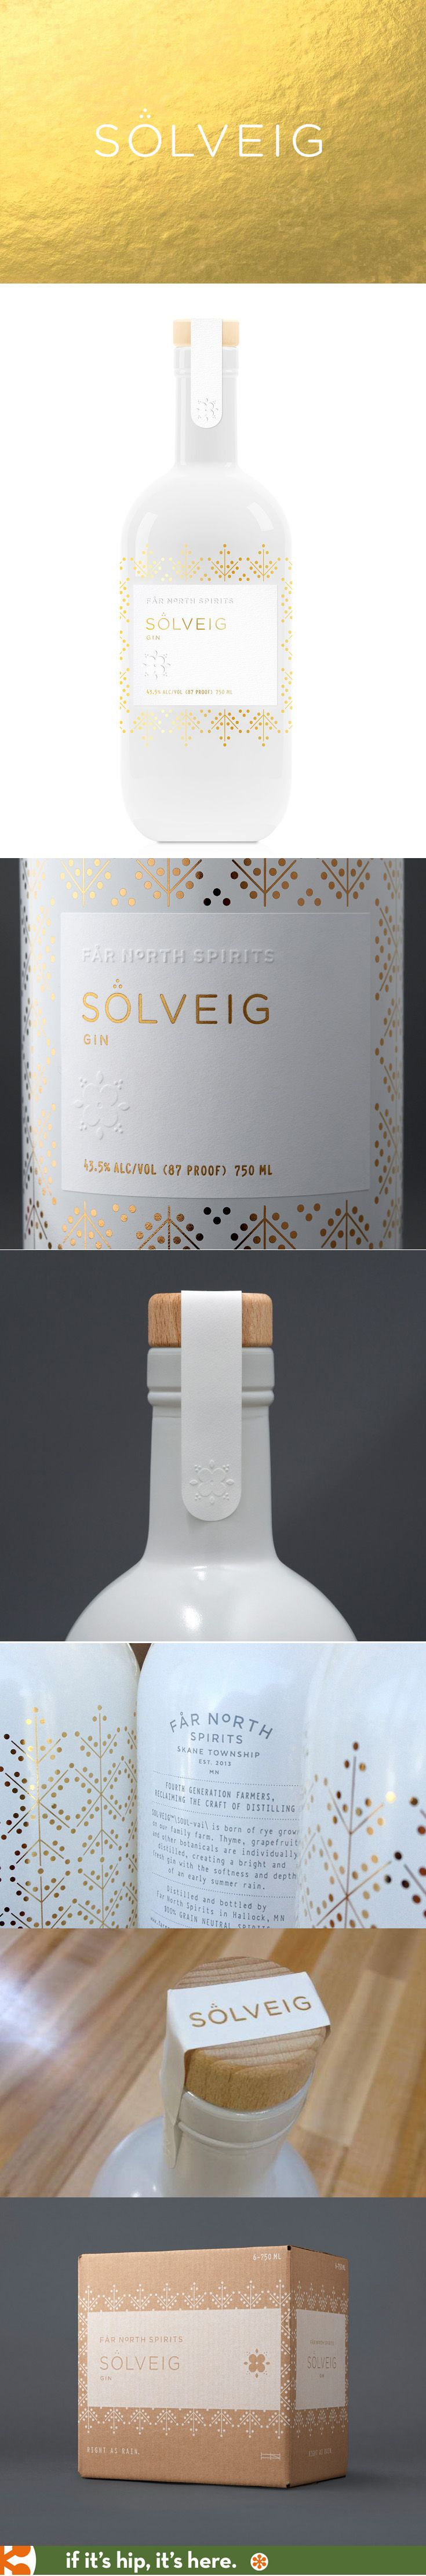 Solveig Gin bottle and package design by Jenney Stevens for Far North Spirits.